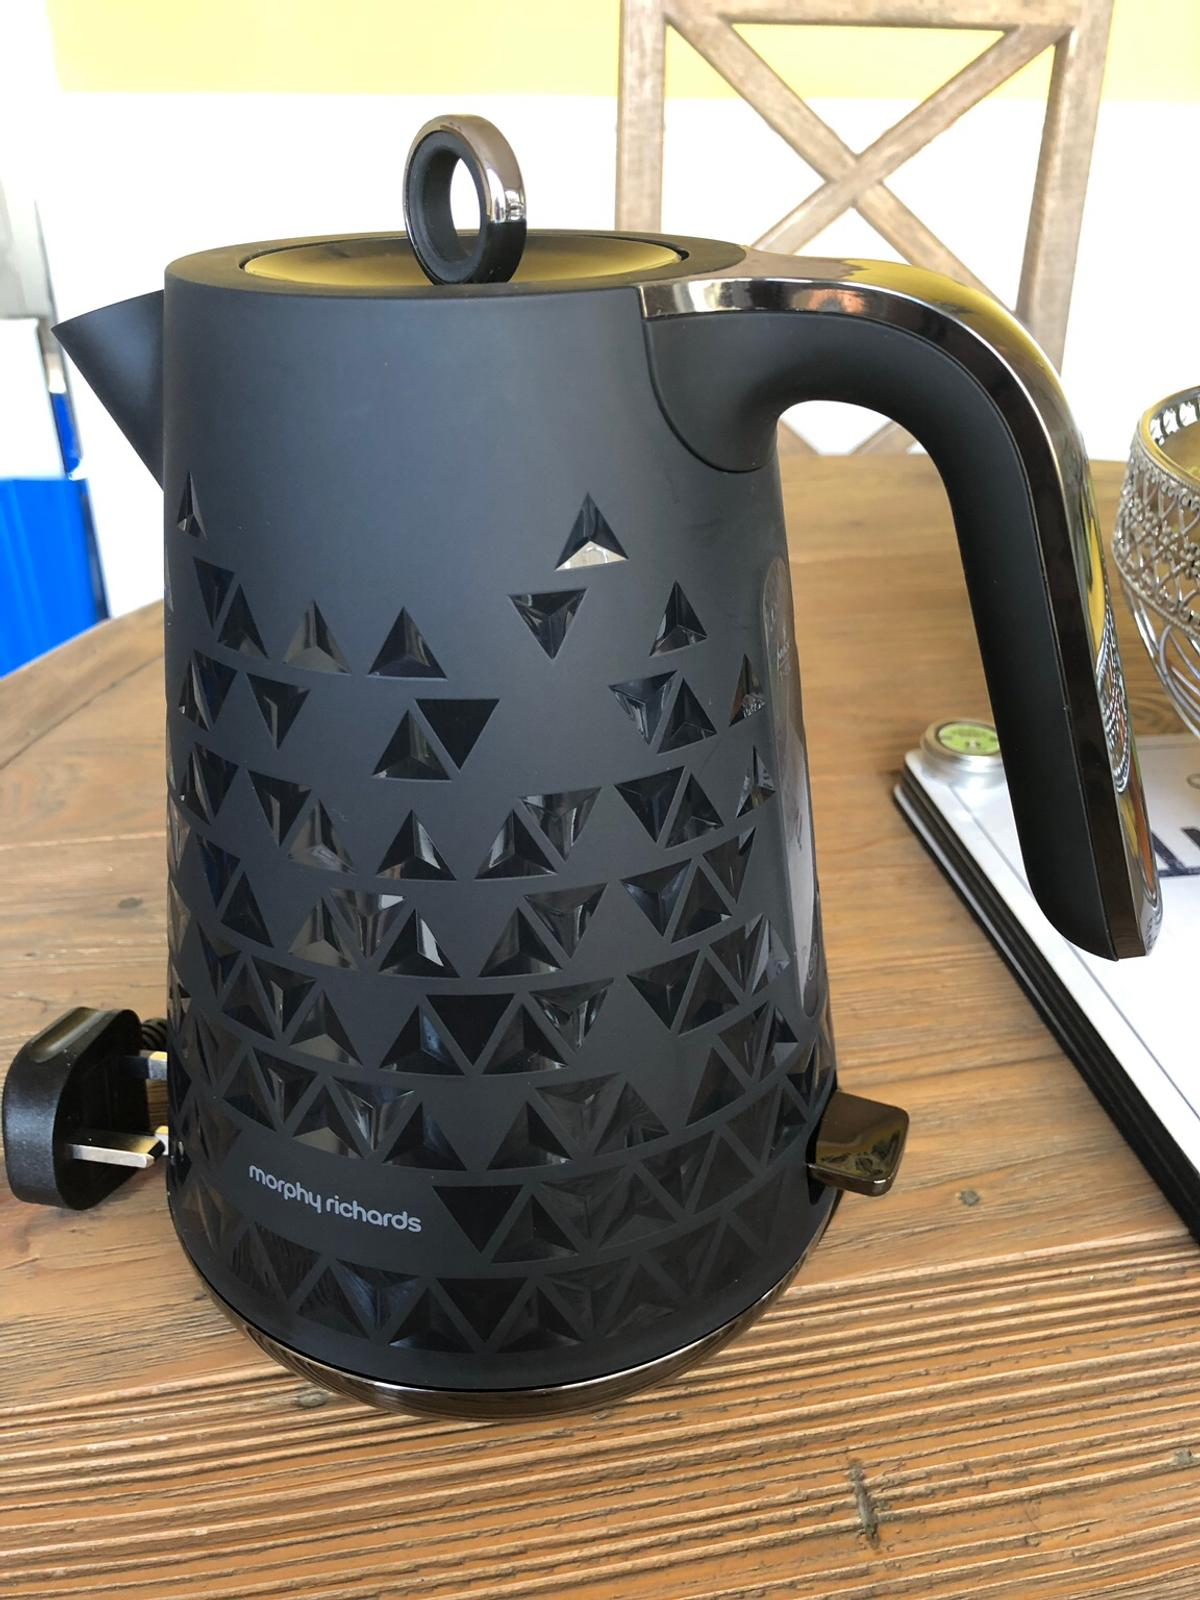 Morphy Richards Prism Kettle and